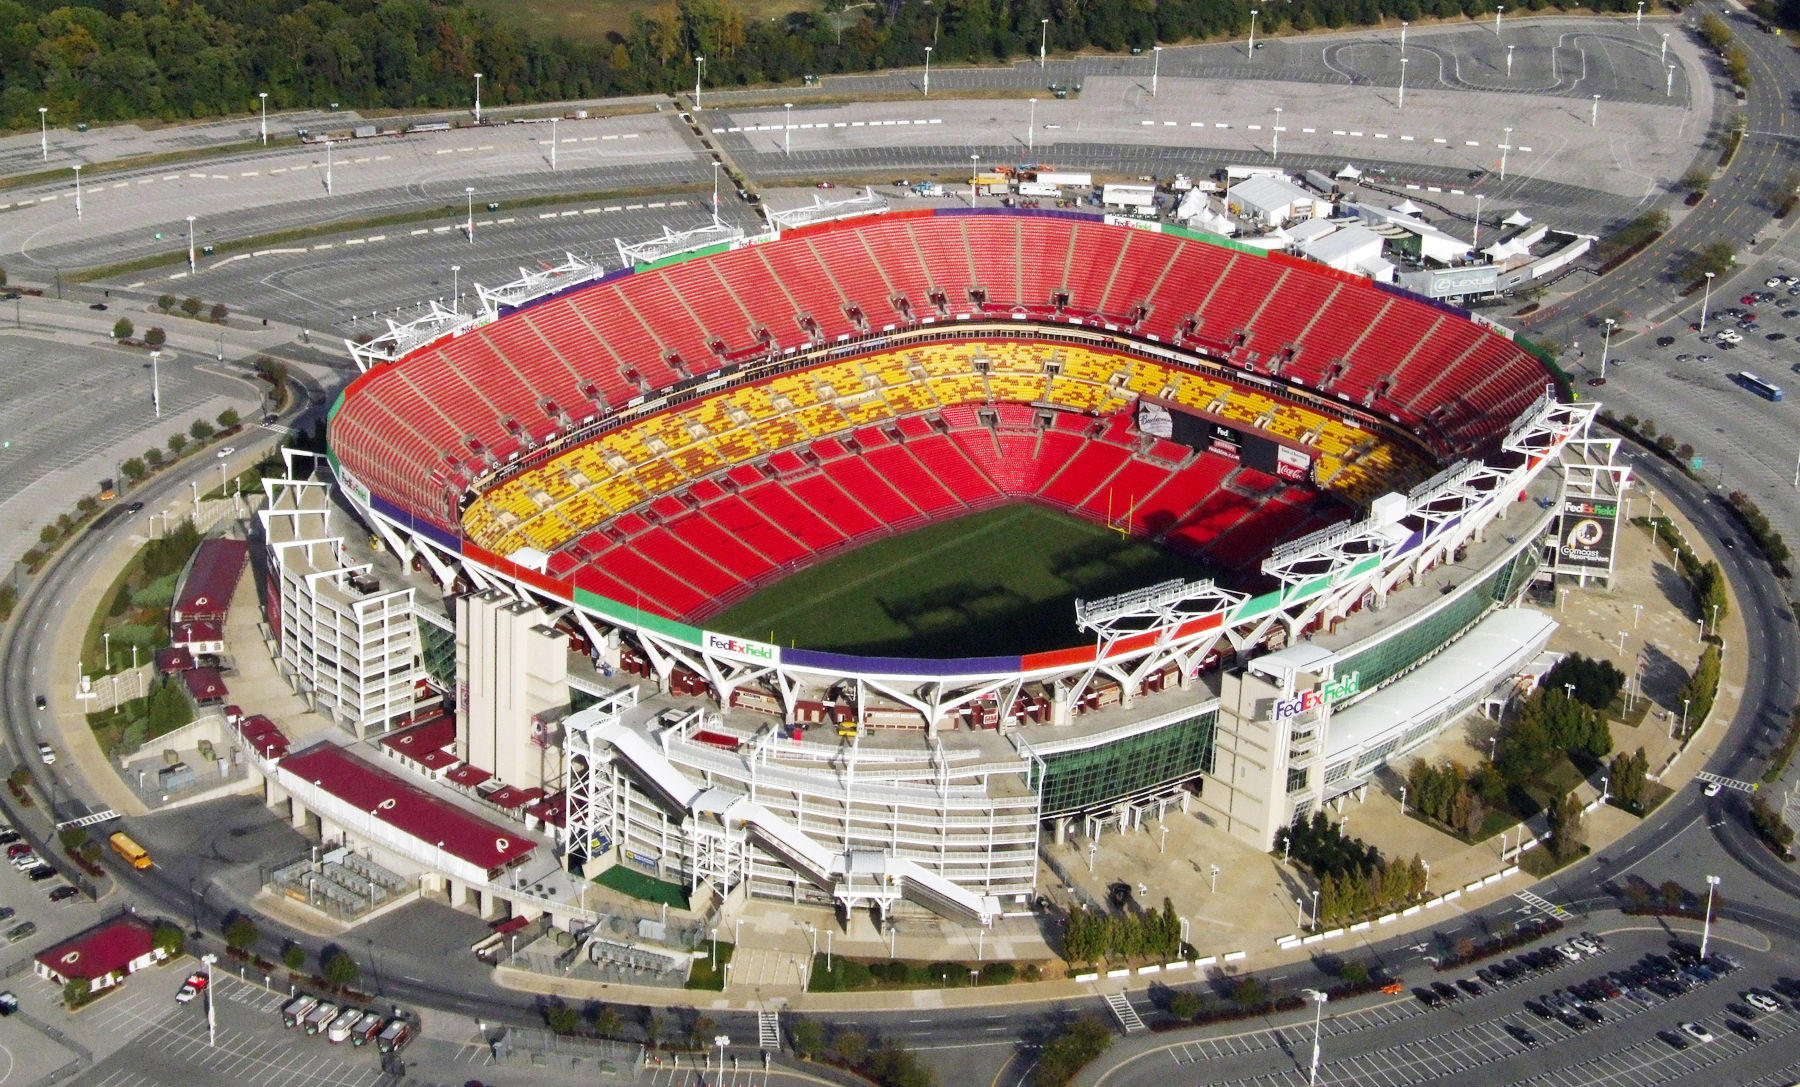 Washington Football redskins stadium